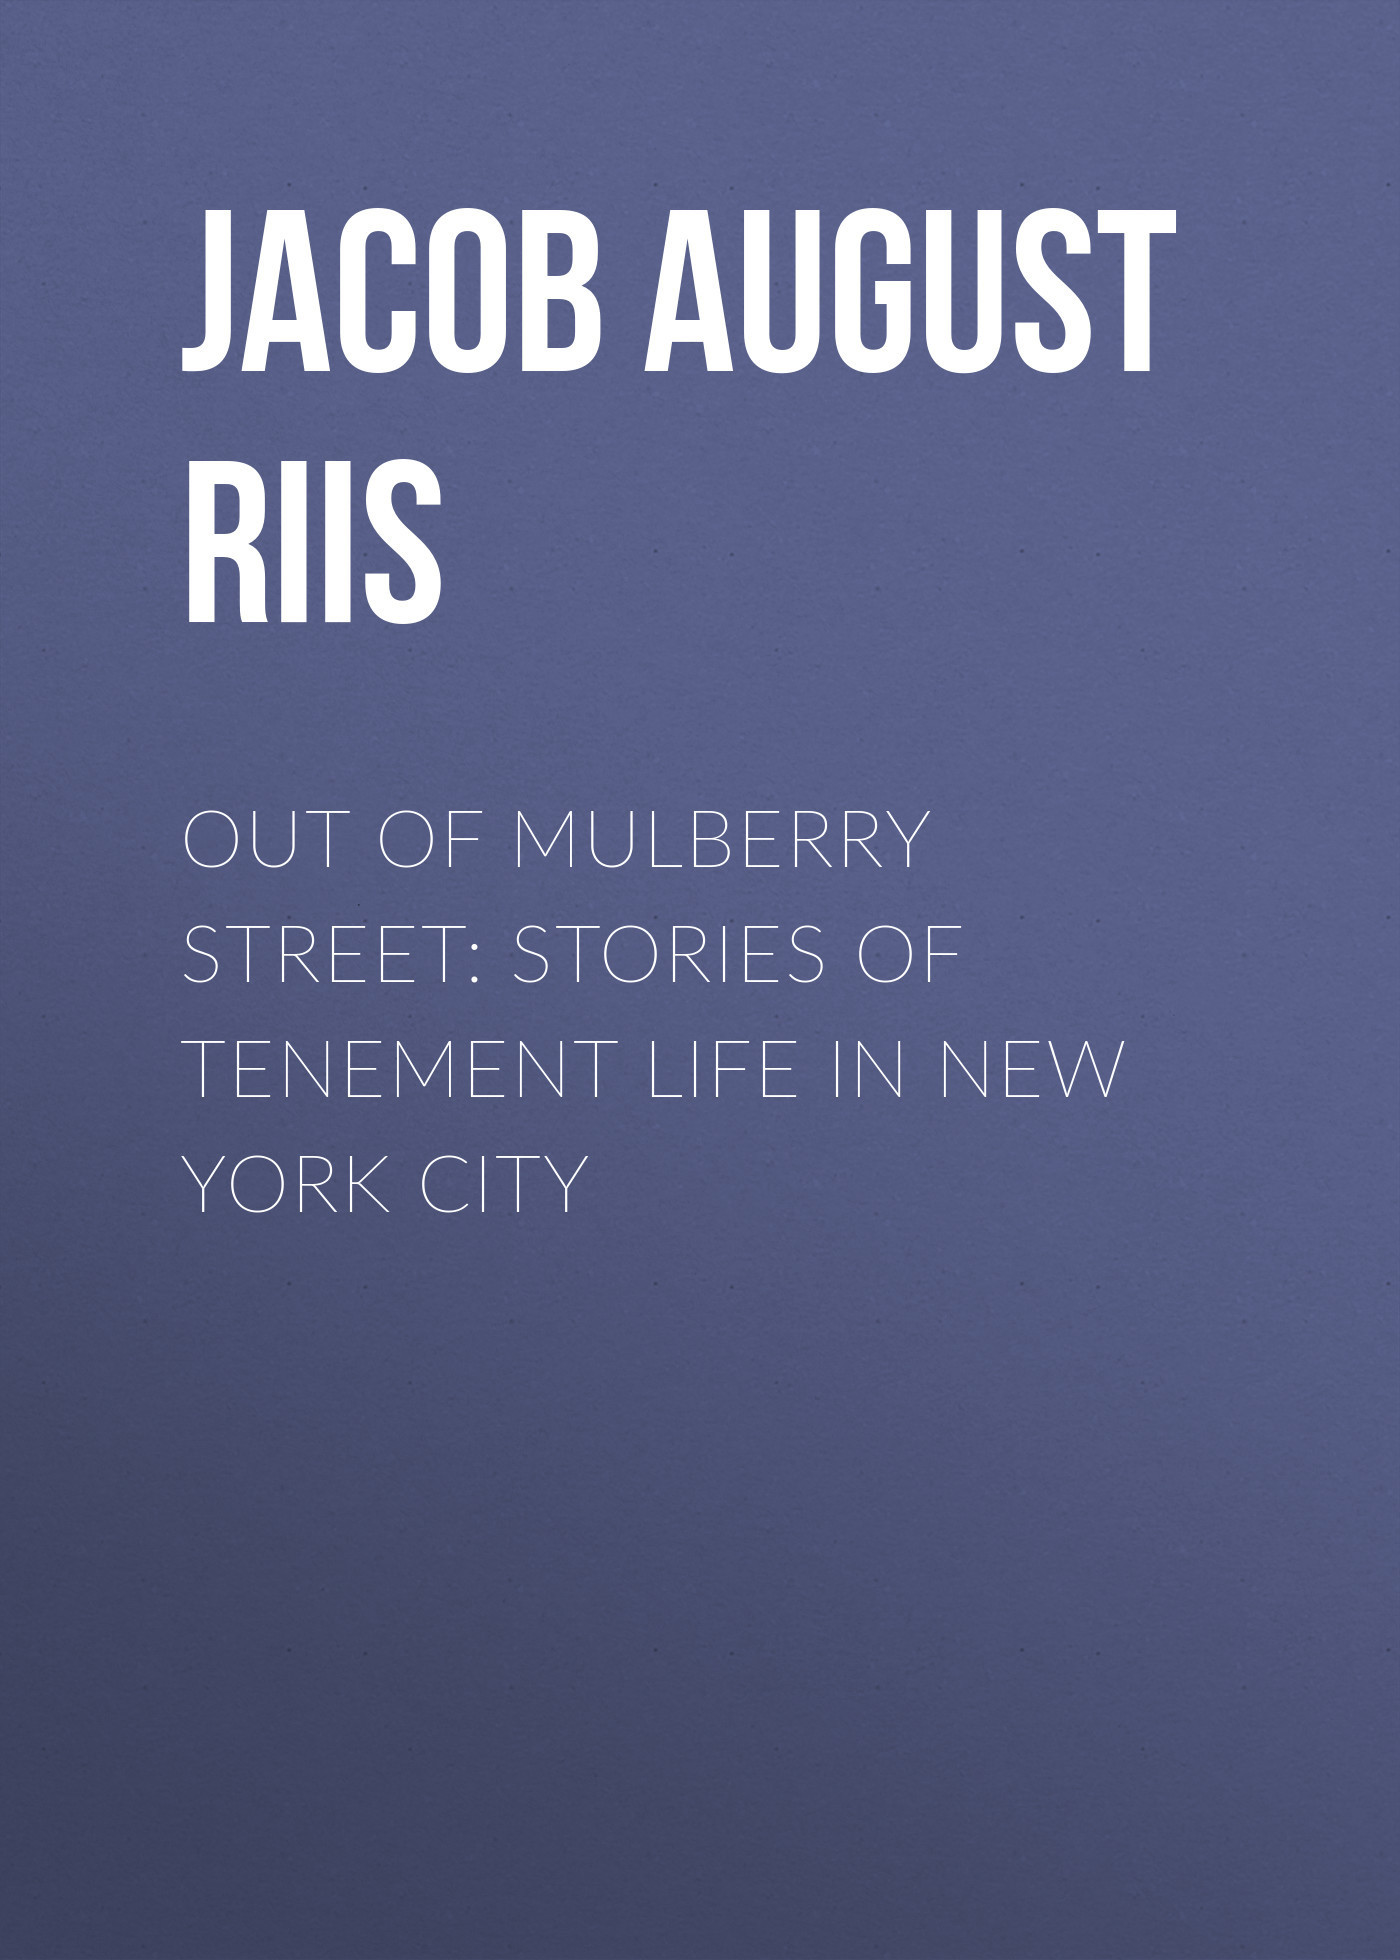 Jacob August Riis Out of Mulberry Street: Stories of Tenement life in New York City tv tuner out of range